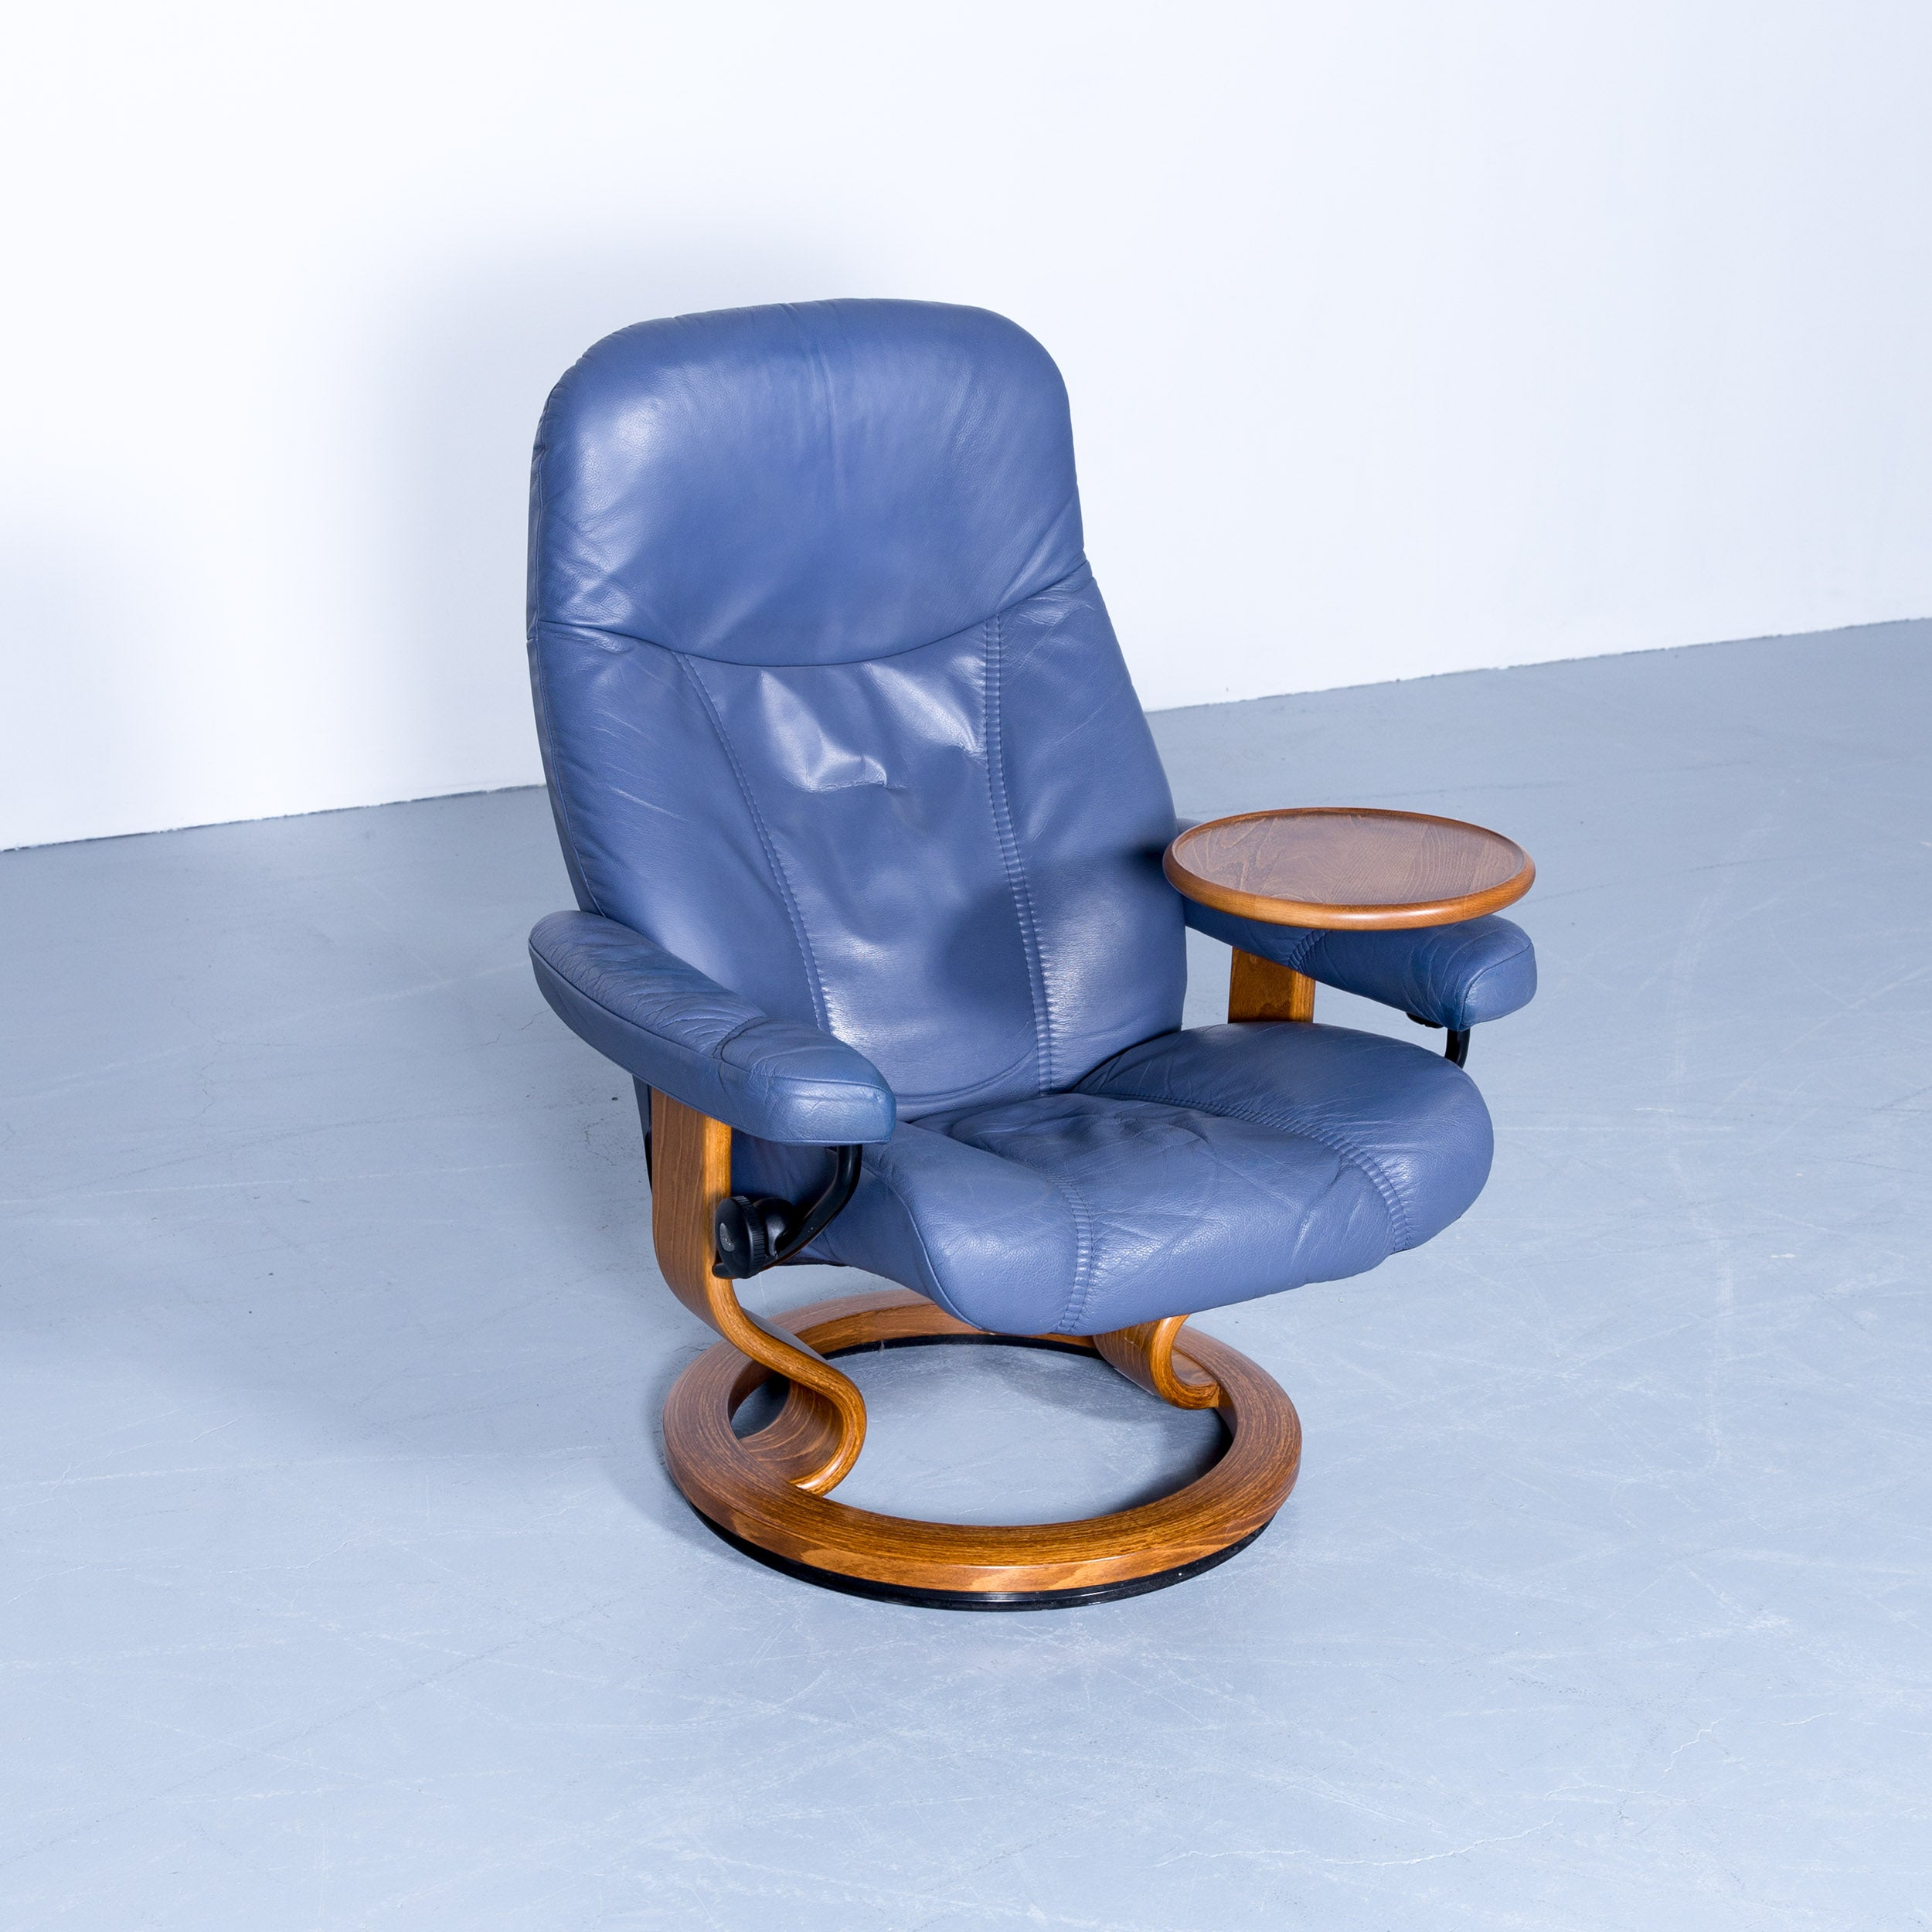 Stressless Consul Preisvergleich Stressless Consul Relax Armchair And Footstool Set Blue Leather Relax Function